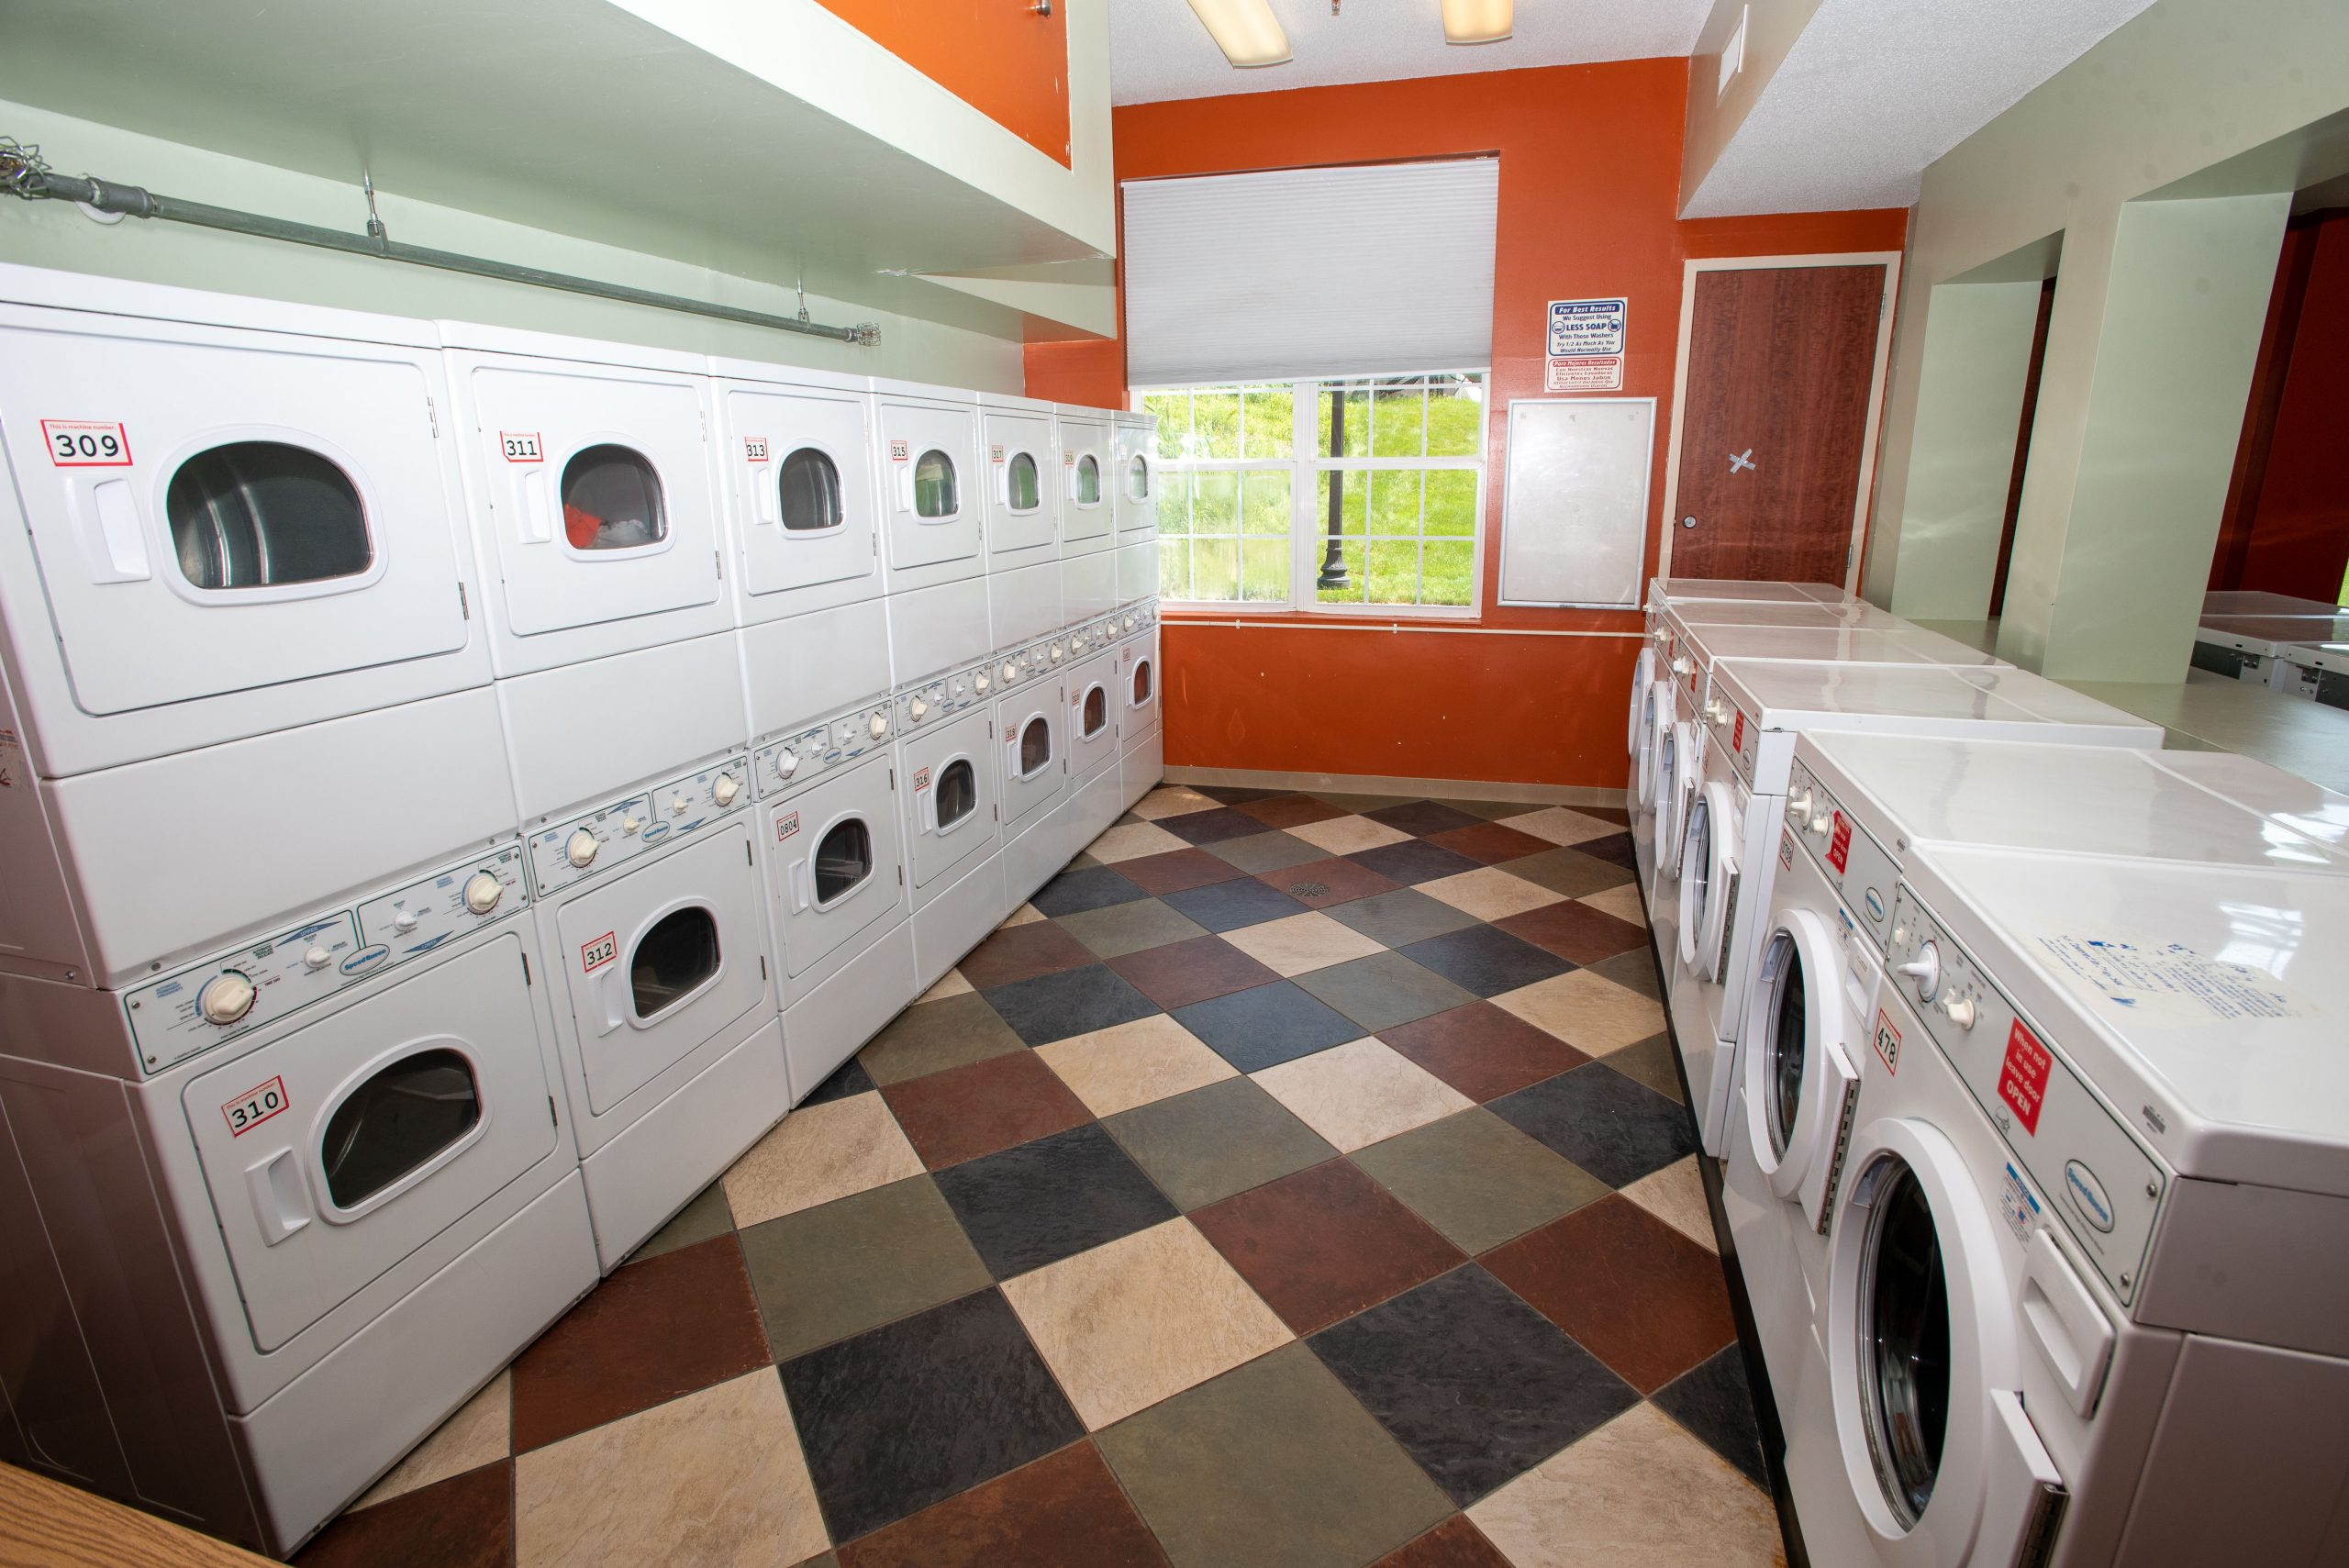 Busby Laundry Room